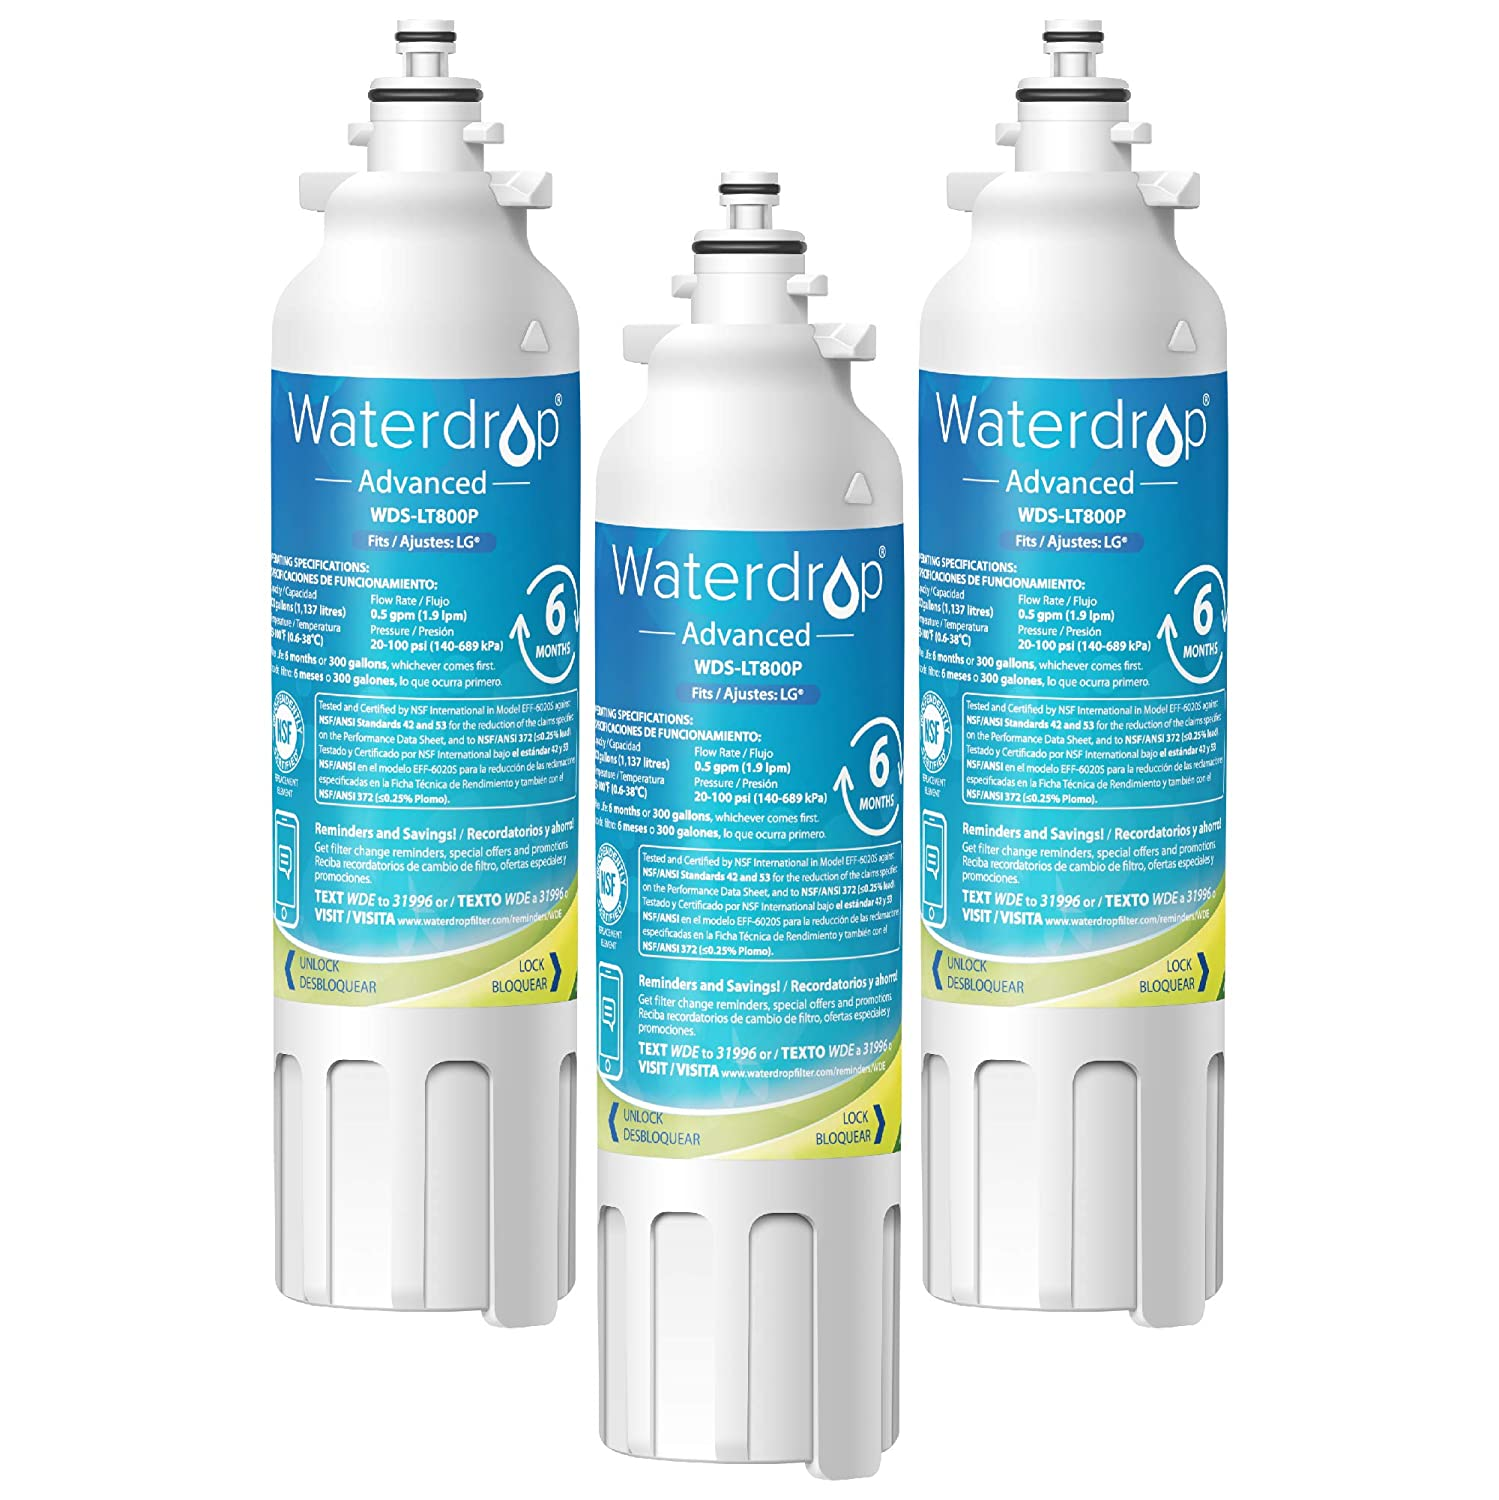 Waterdrop ADQ73613401 NSF 53&42 Certified Refrigerator Water Filter, Compatible with LG LT800P, Kenmore 9490, ADQ73613402, LSXS26326S, LMXC23746S, LSXS26366S, 46-9490, 469490, LMXC23746D, Pack of 3